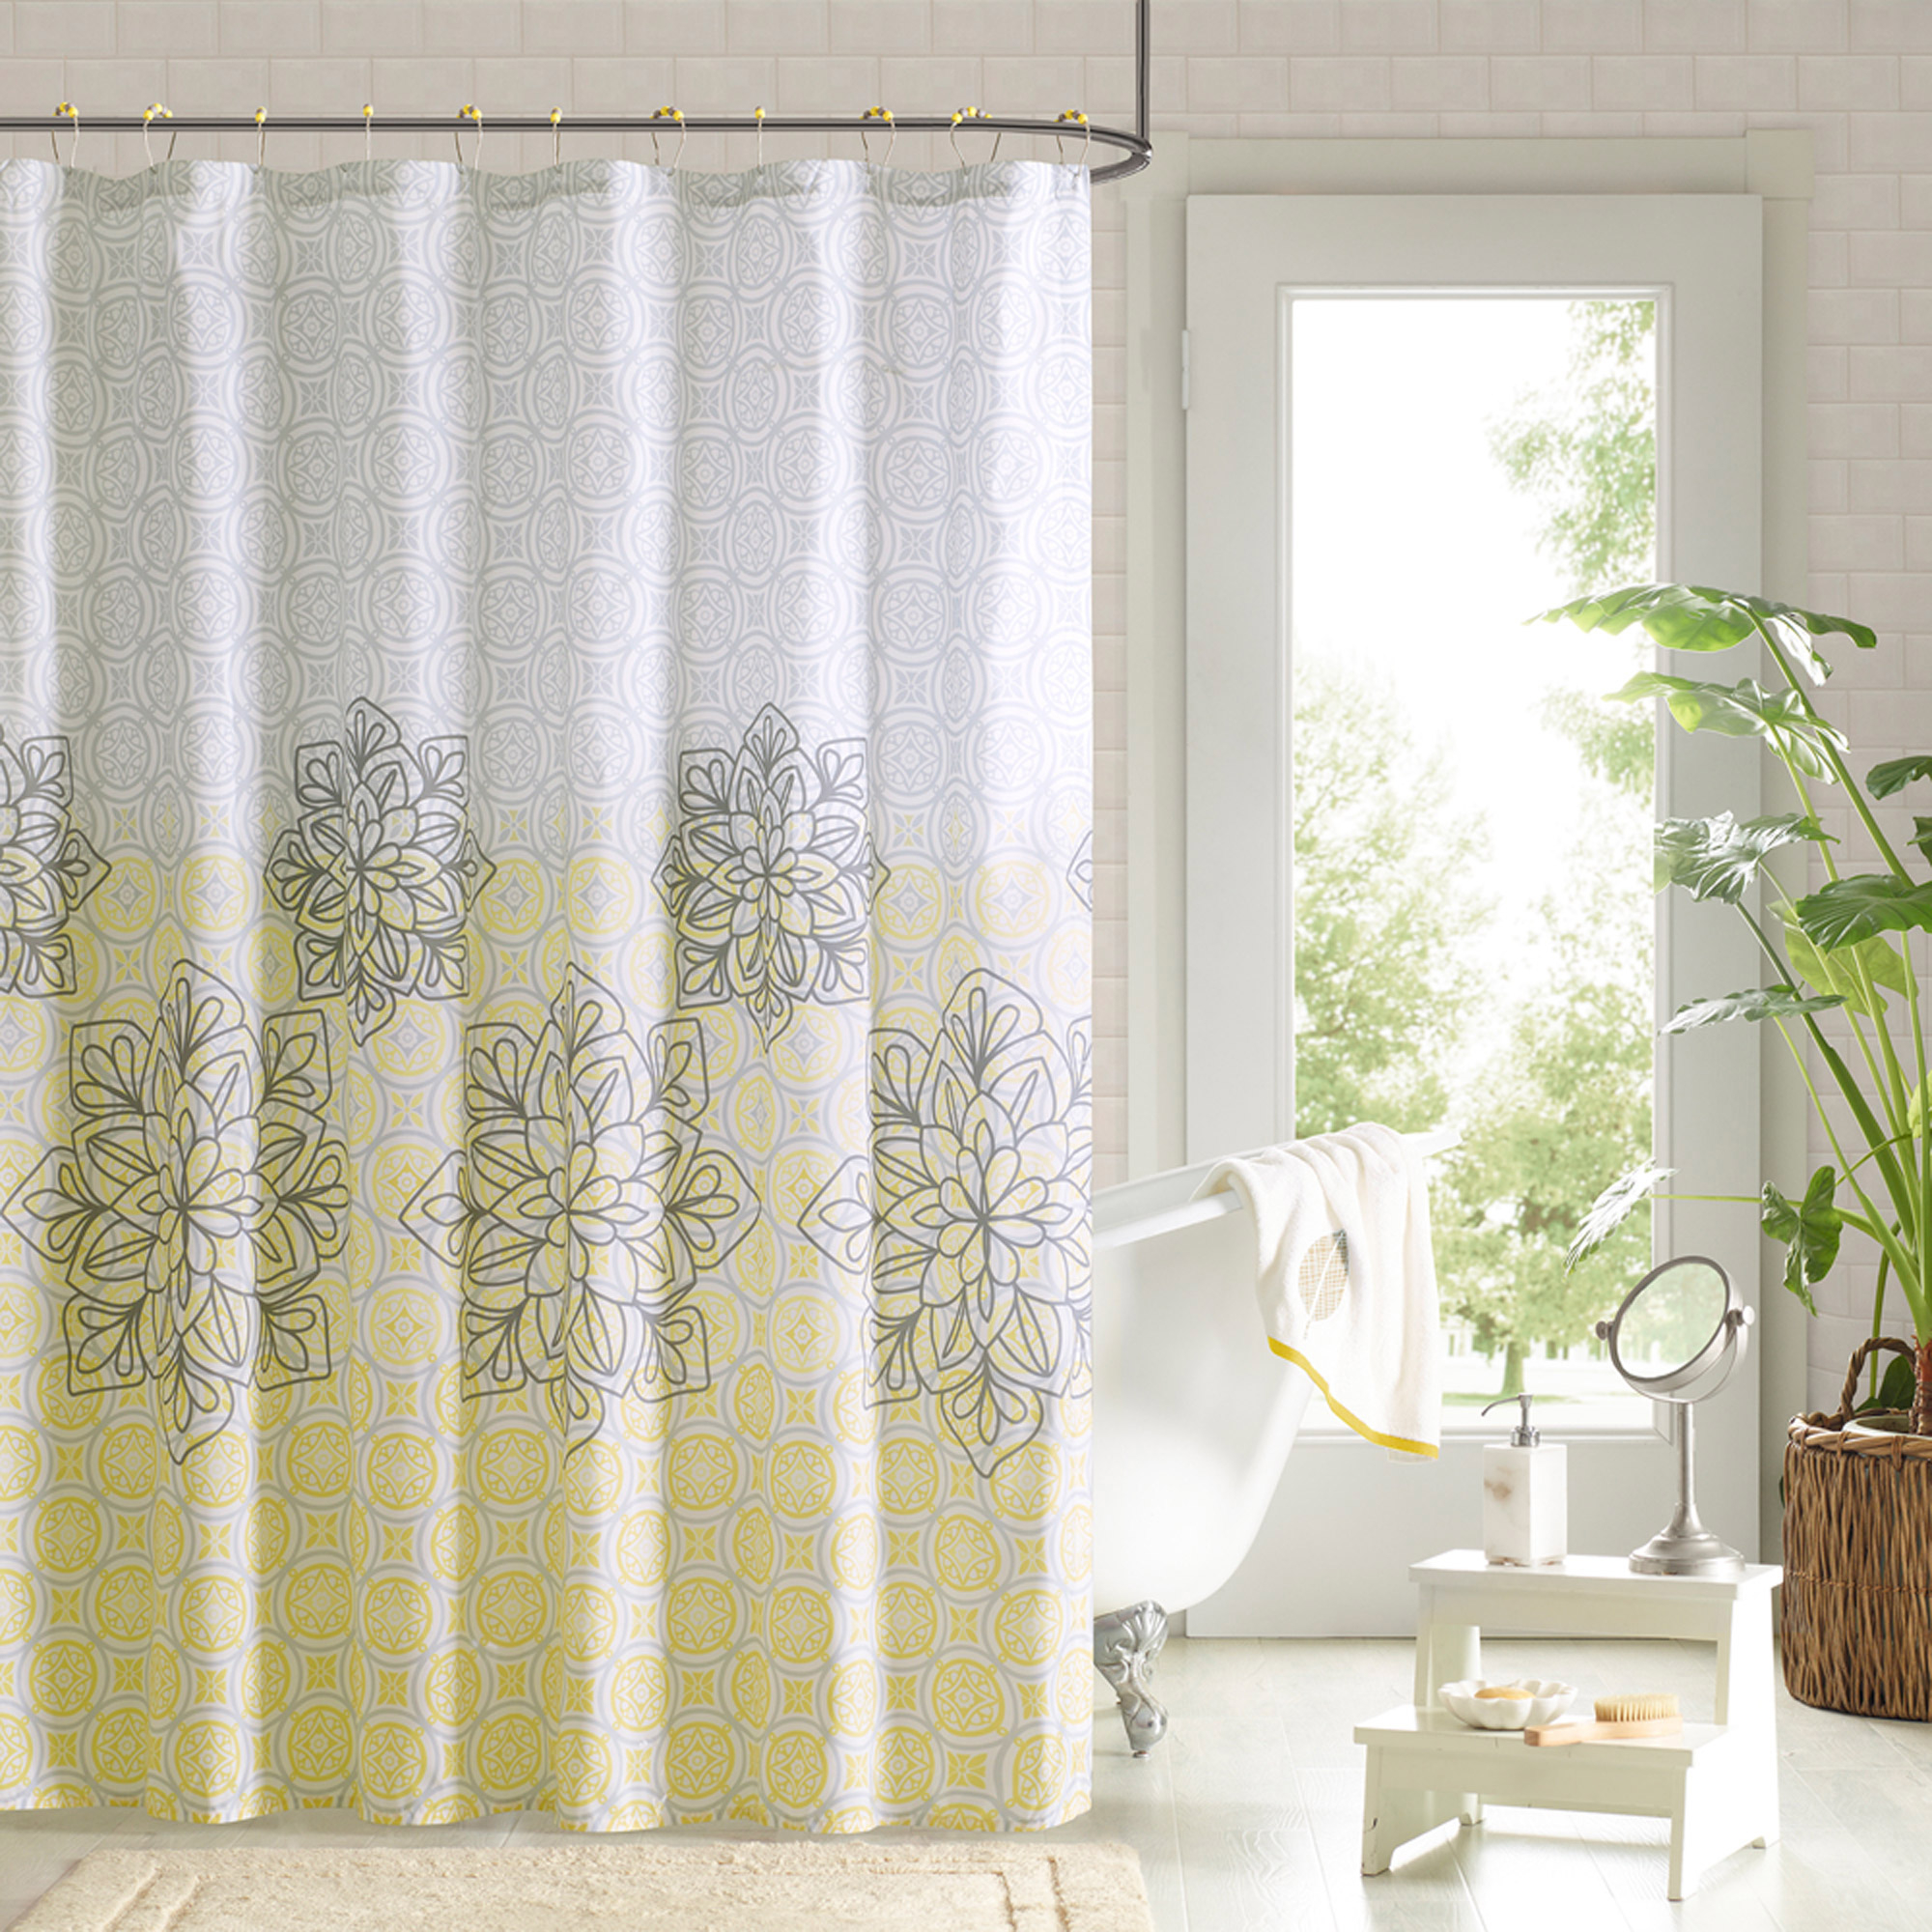 Yellow Fabric Shower Curtain Yellow Patterned Shower Curtains Shower Curtains Ideas